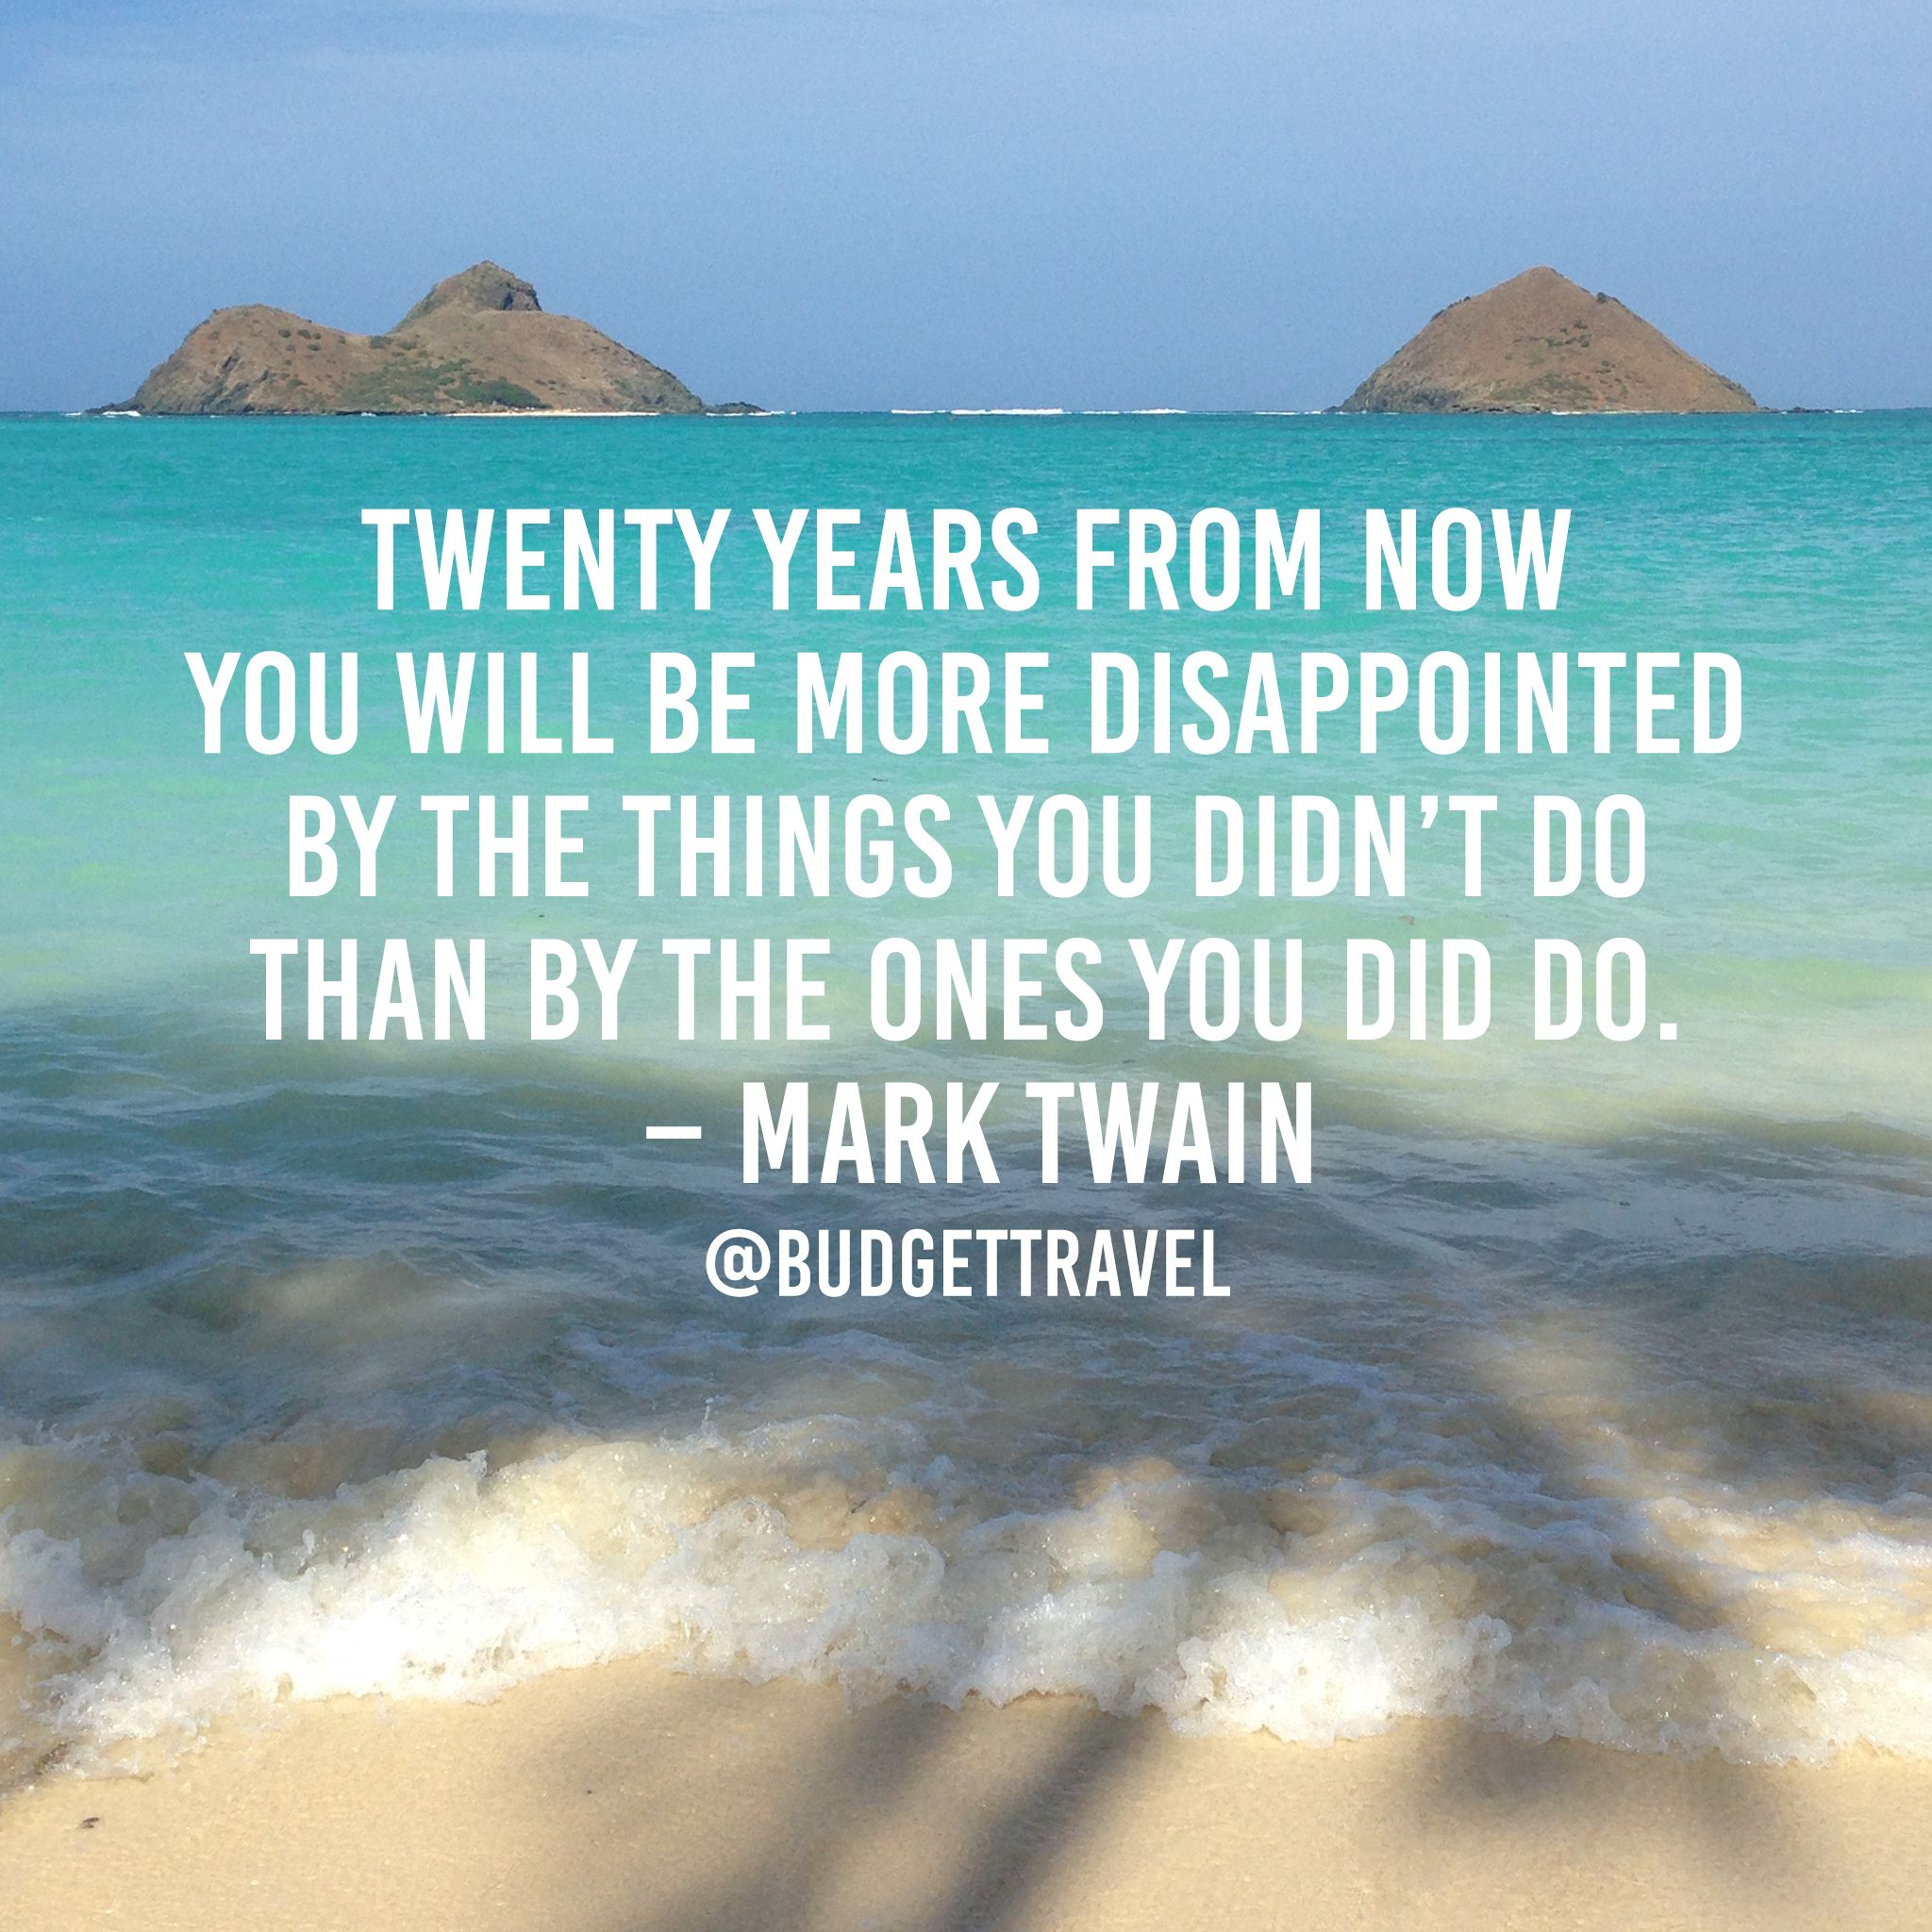 38 Most Inspiring Travel Quotes of All Time Mark twain